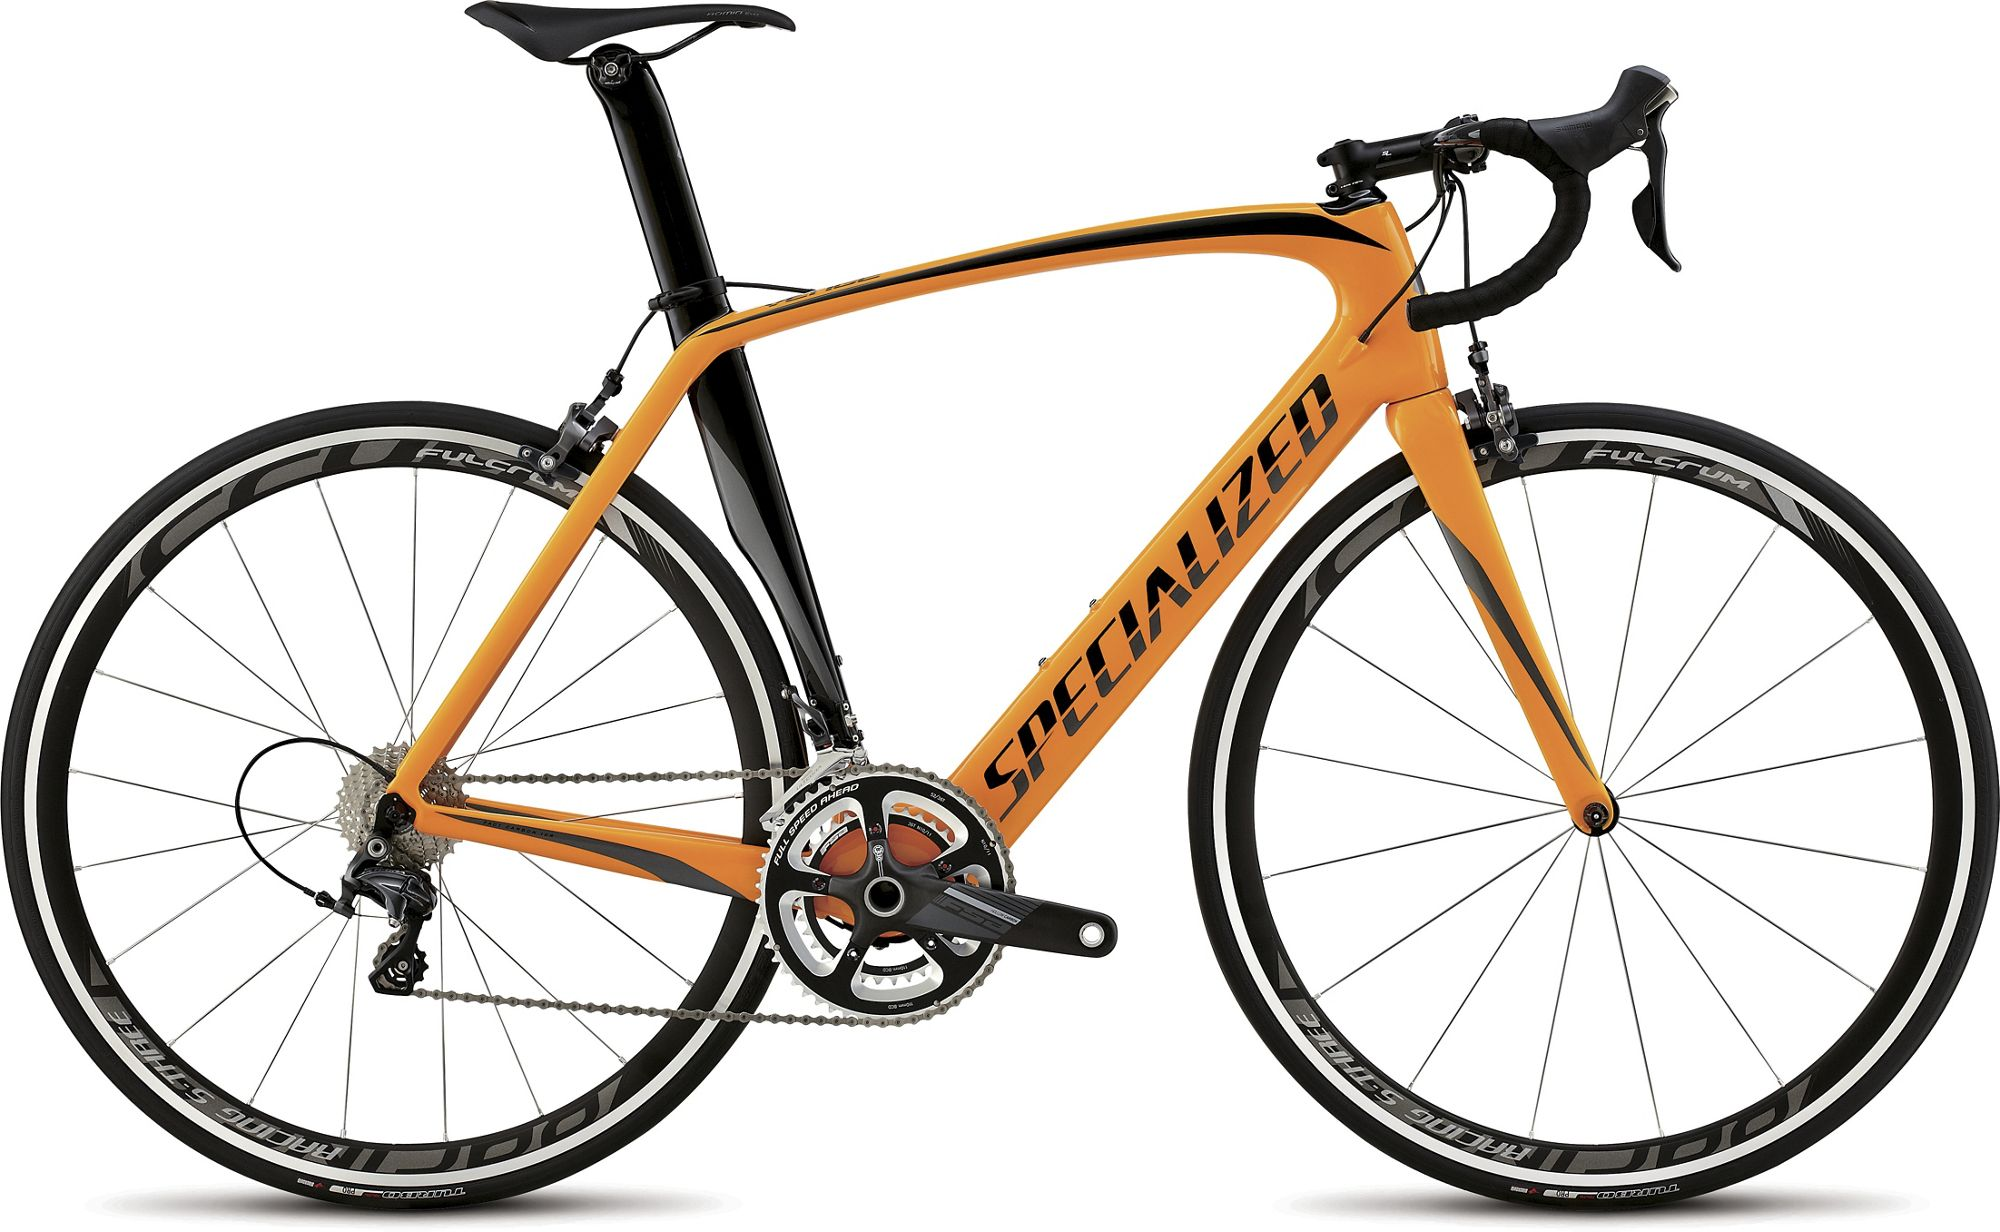 Specialized Venge Expert 2015 Review The Bike List